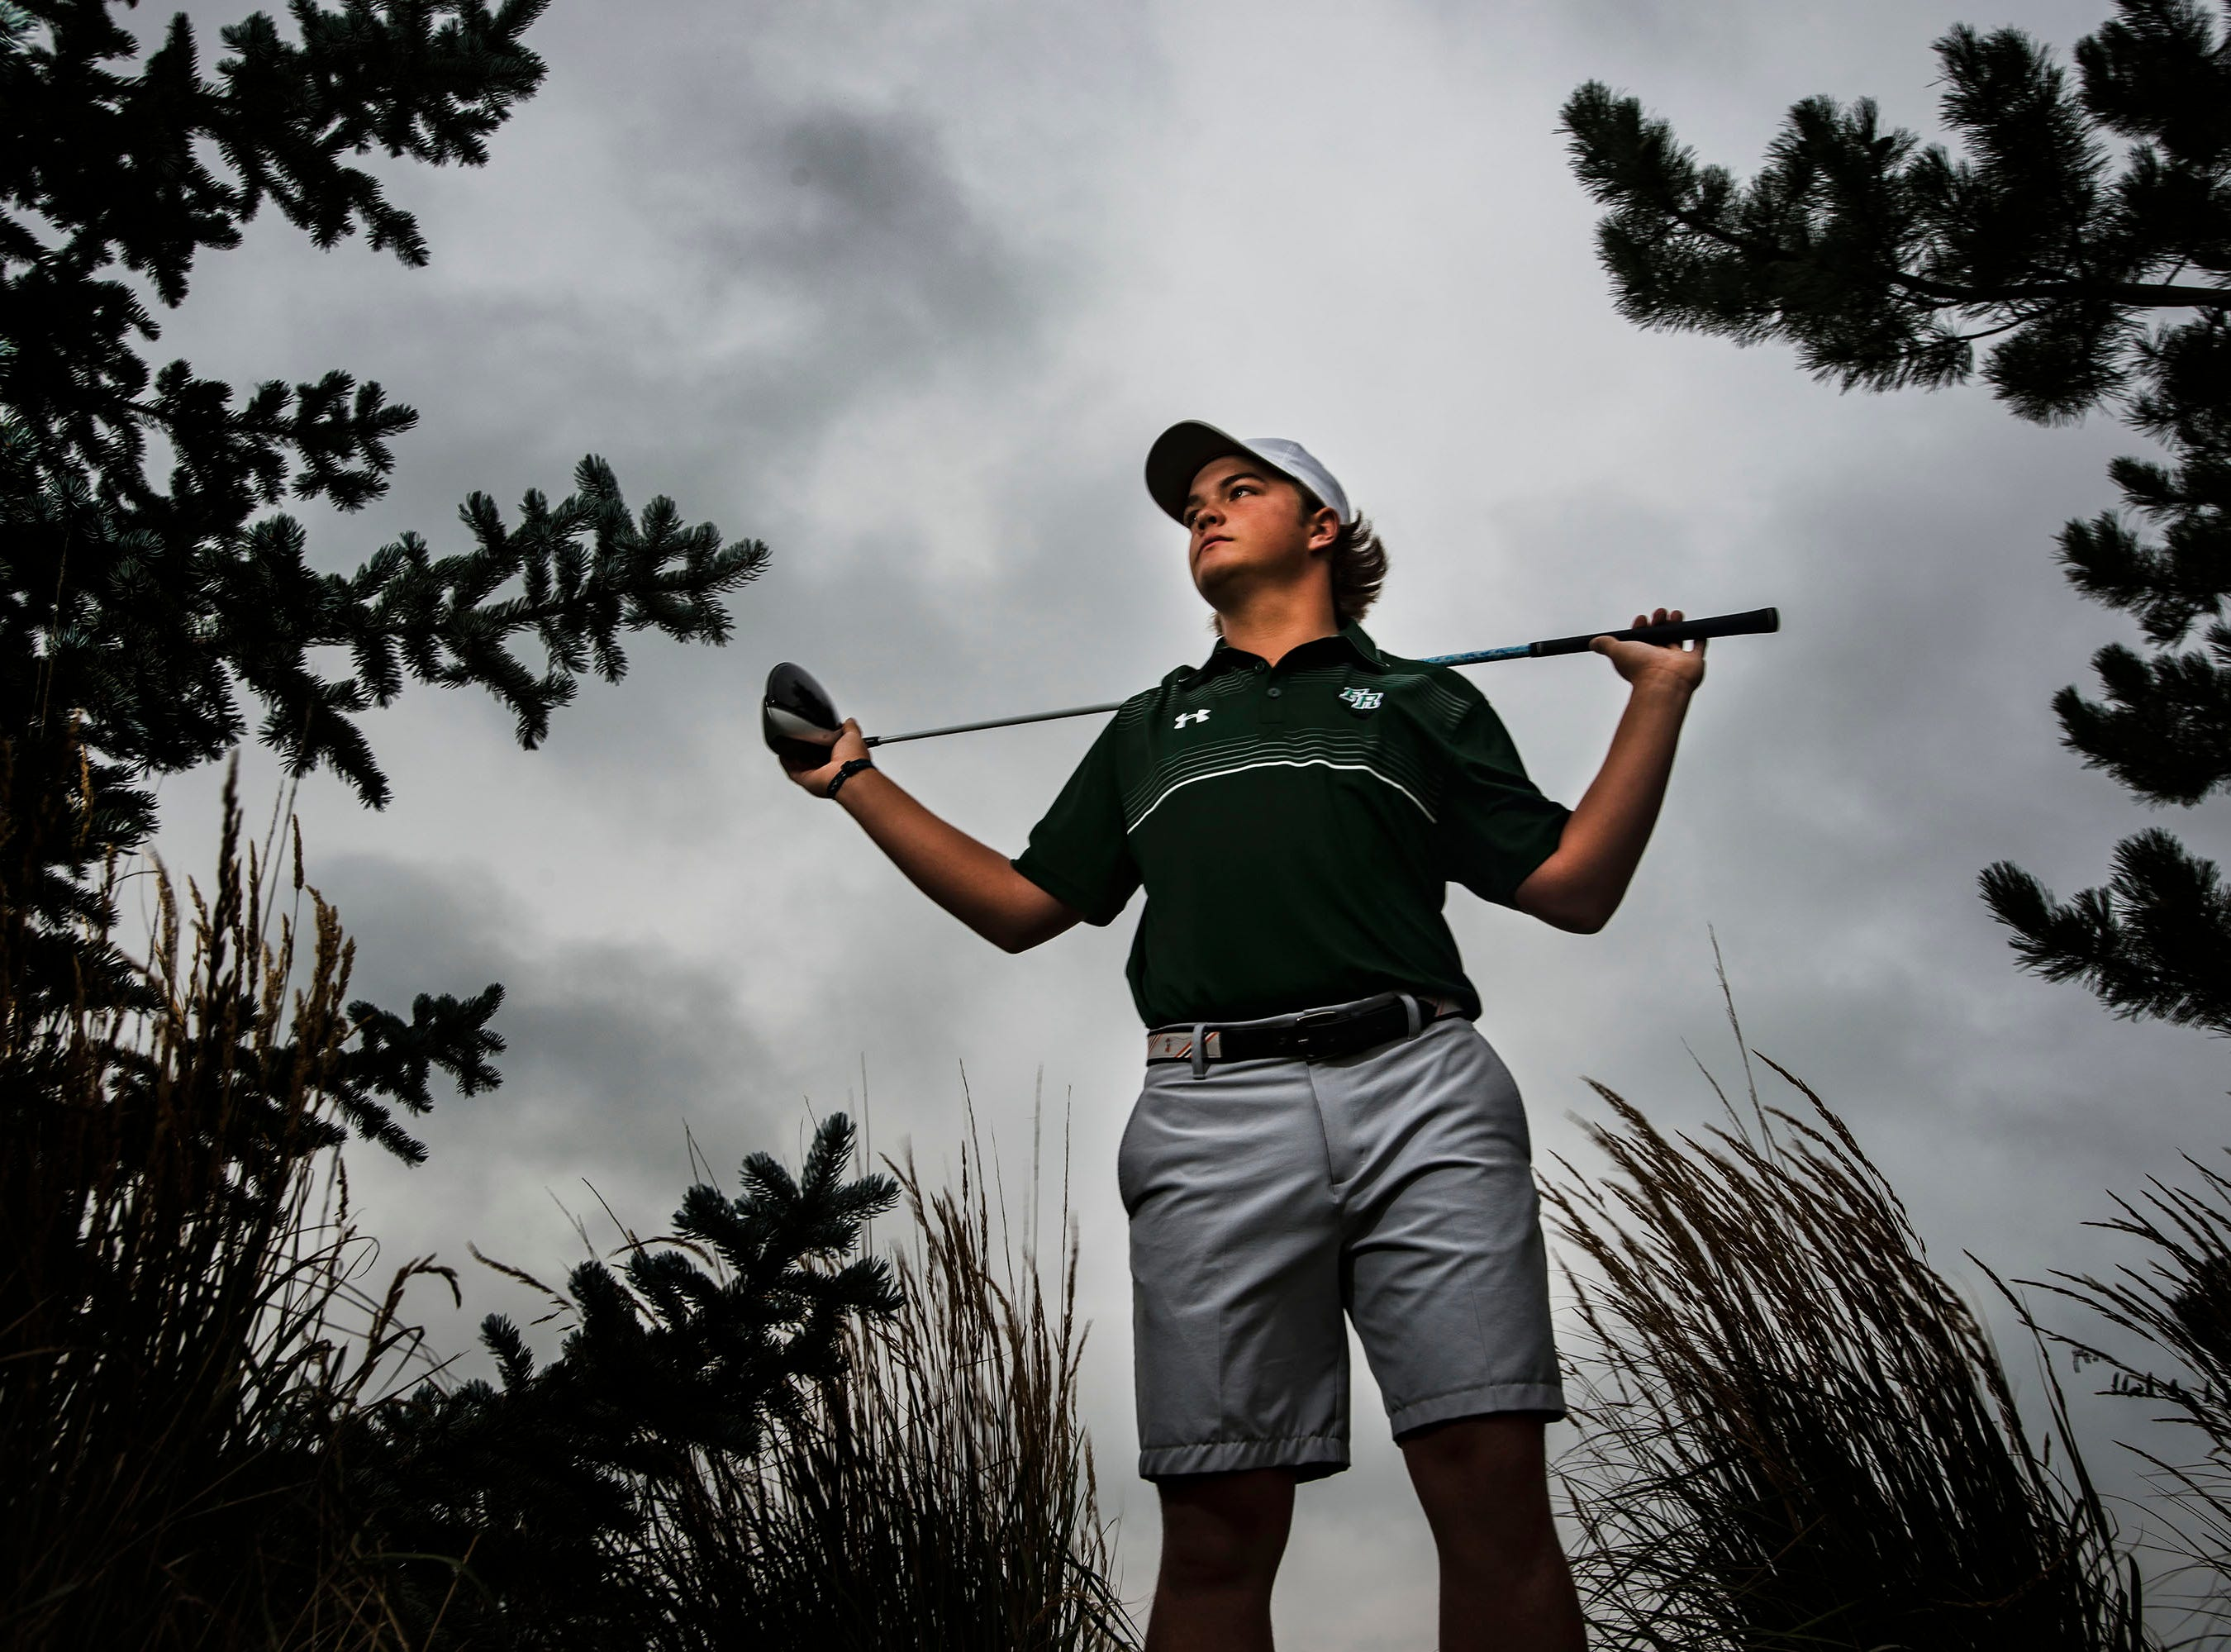 Fossil Ridge High School senior golfer Dillon Stewart poses for a portrait on Wednesday, Aug. 8, 2018, at Ptarmigan Country Club in Fort Collins, Colo.